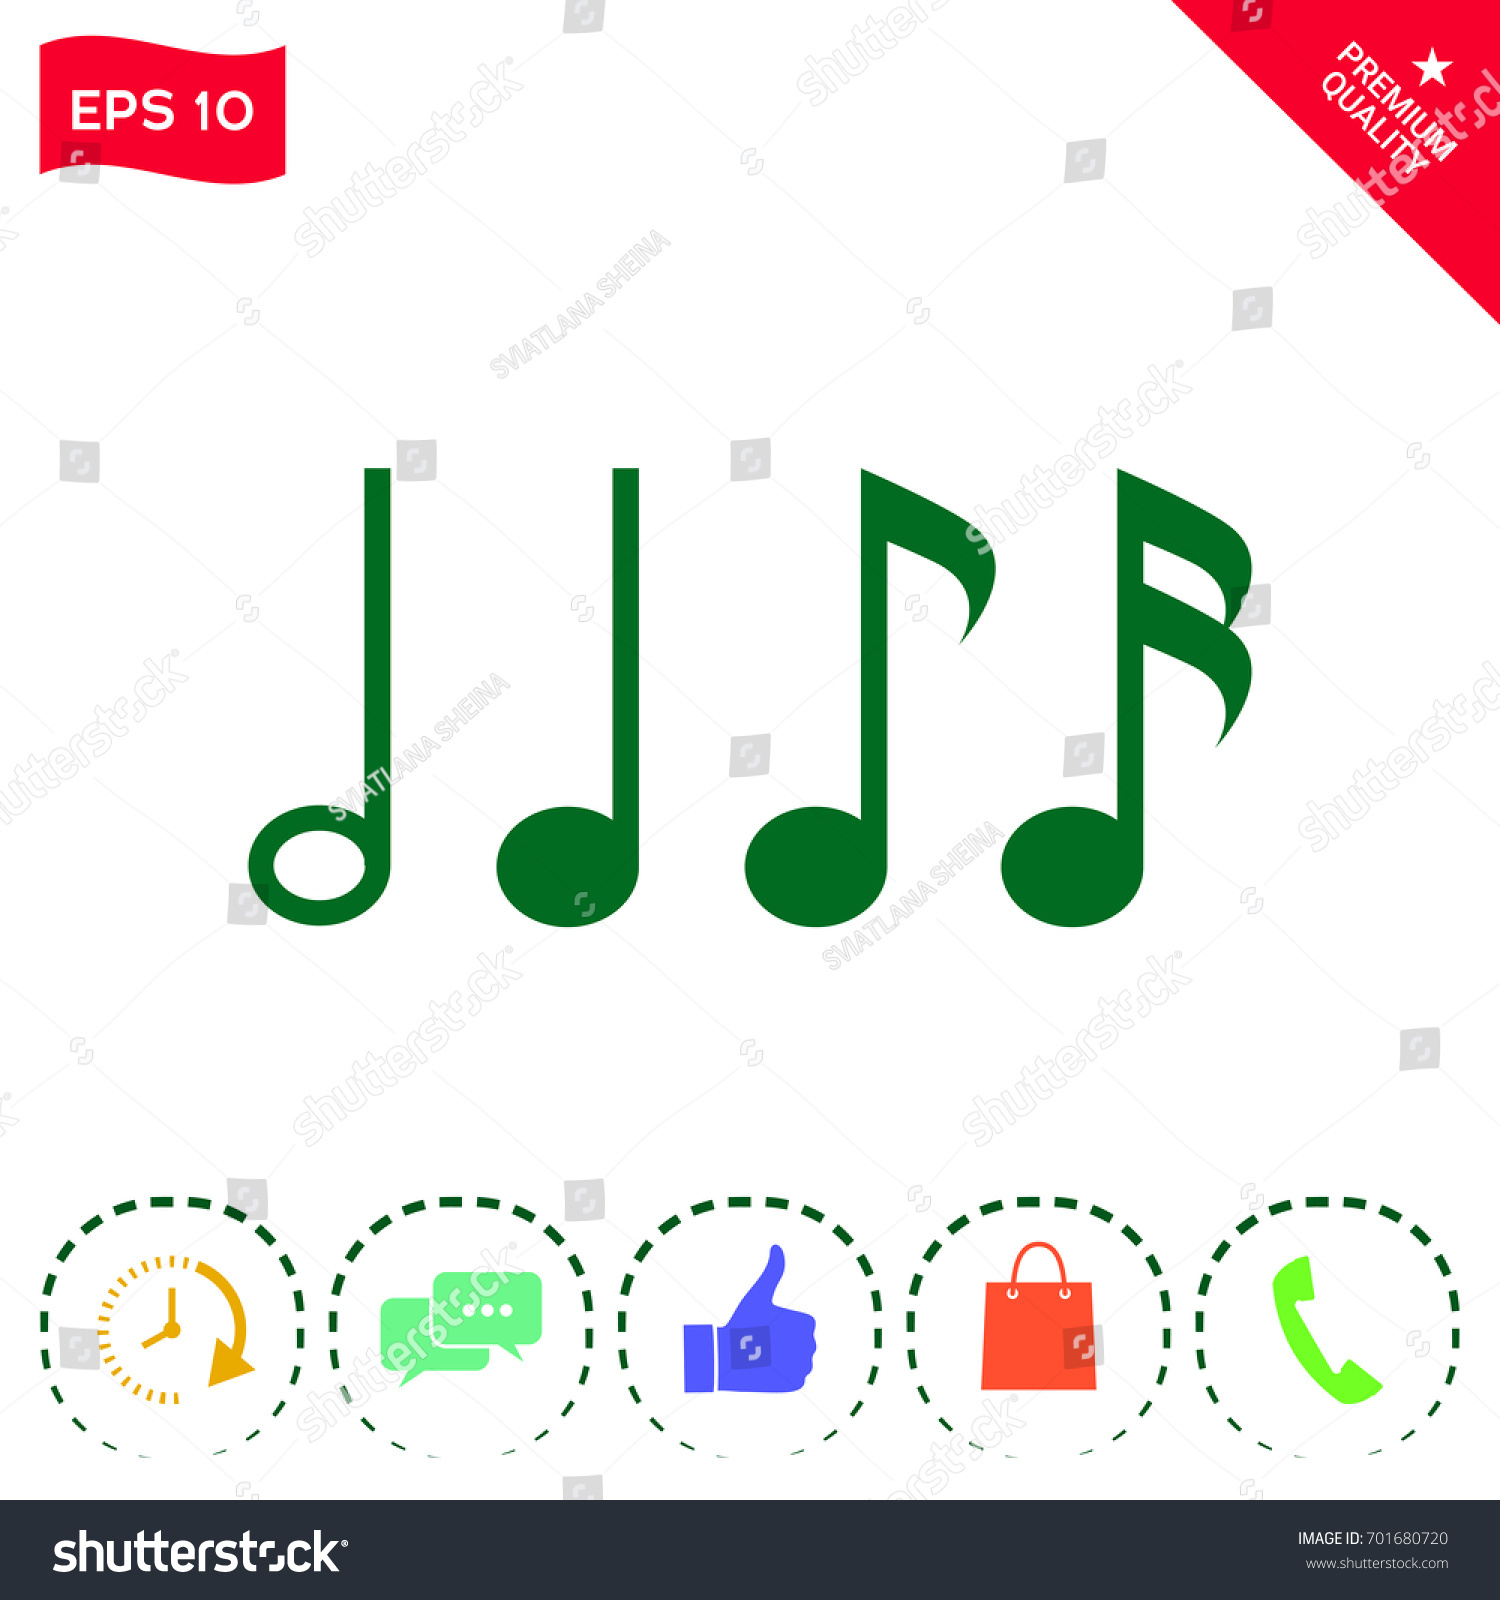 Symbol music notes sixteenth note eighth stock vector 701680720 symbol of music notes sixteenth note eighth note quarter note and half buycottarizona Image collections